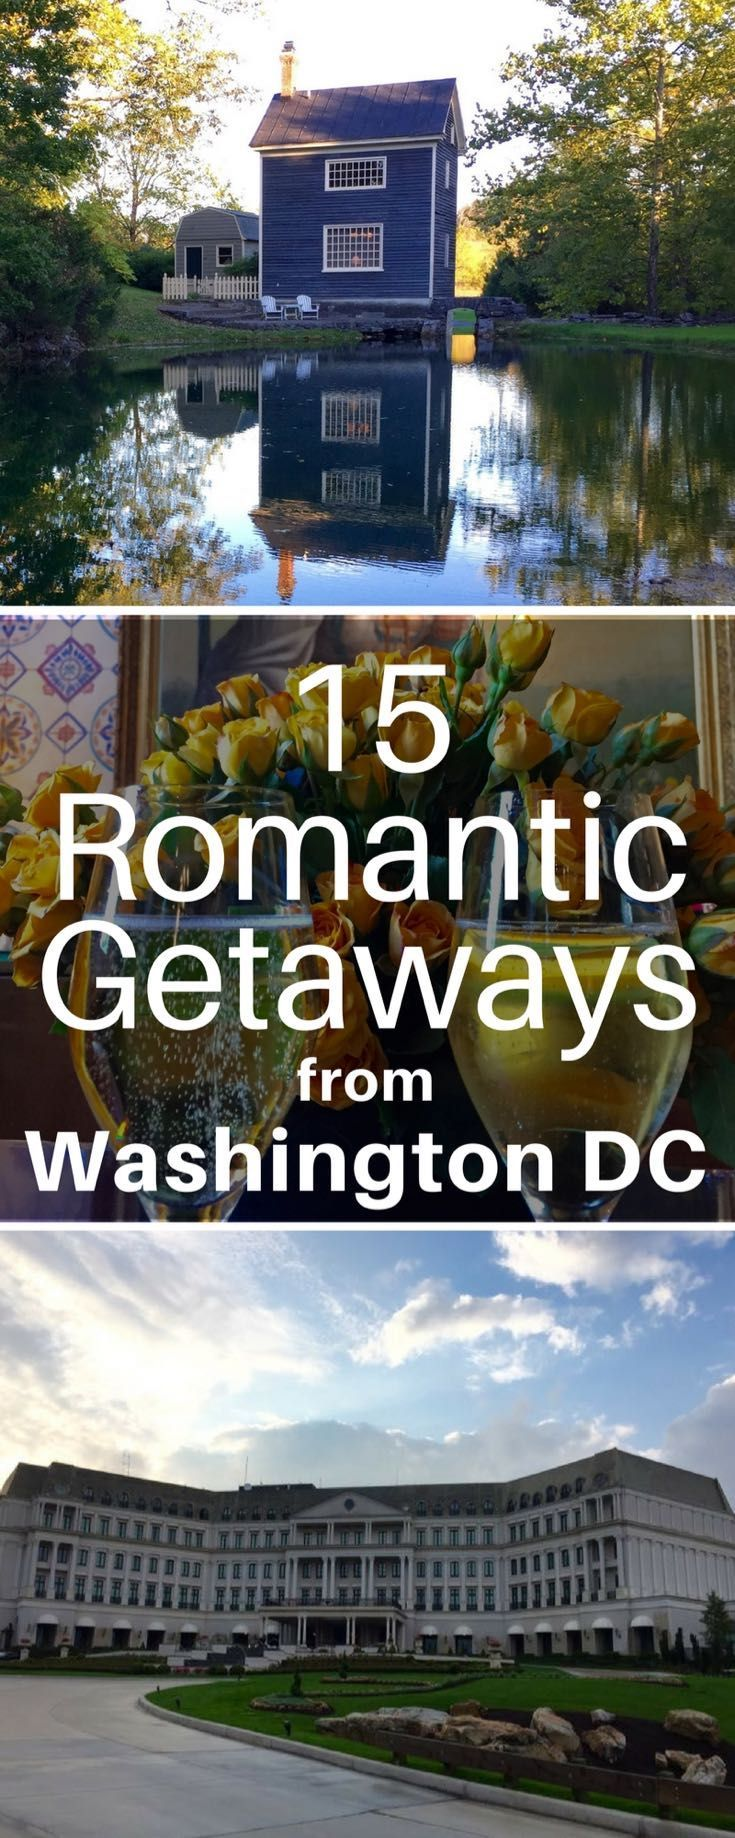 USA #Travel | Romantic Getaways | Spark the flames of love with these 15 fabulous #romantic getaways from Washington DC, including charming country inns and luxurious city lodging.